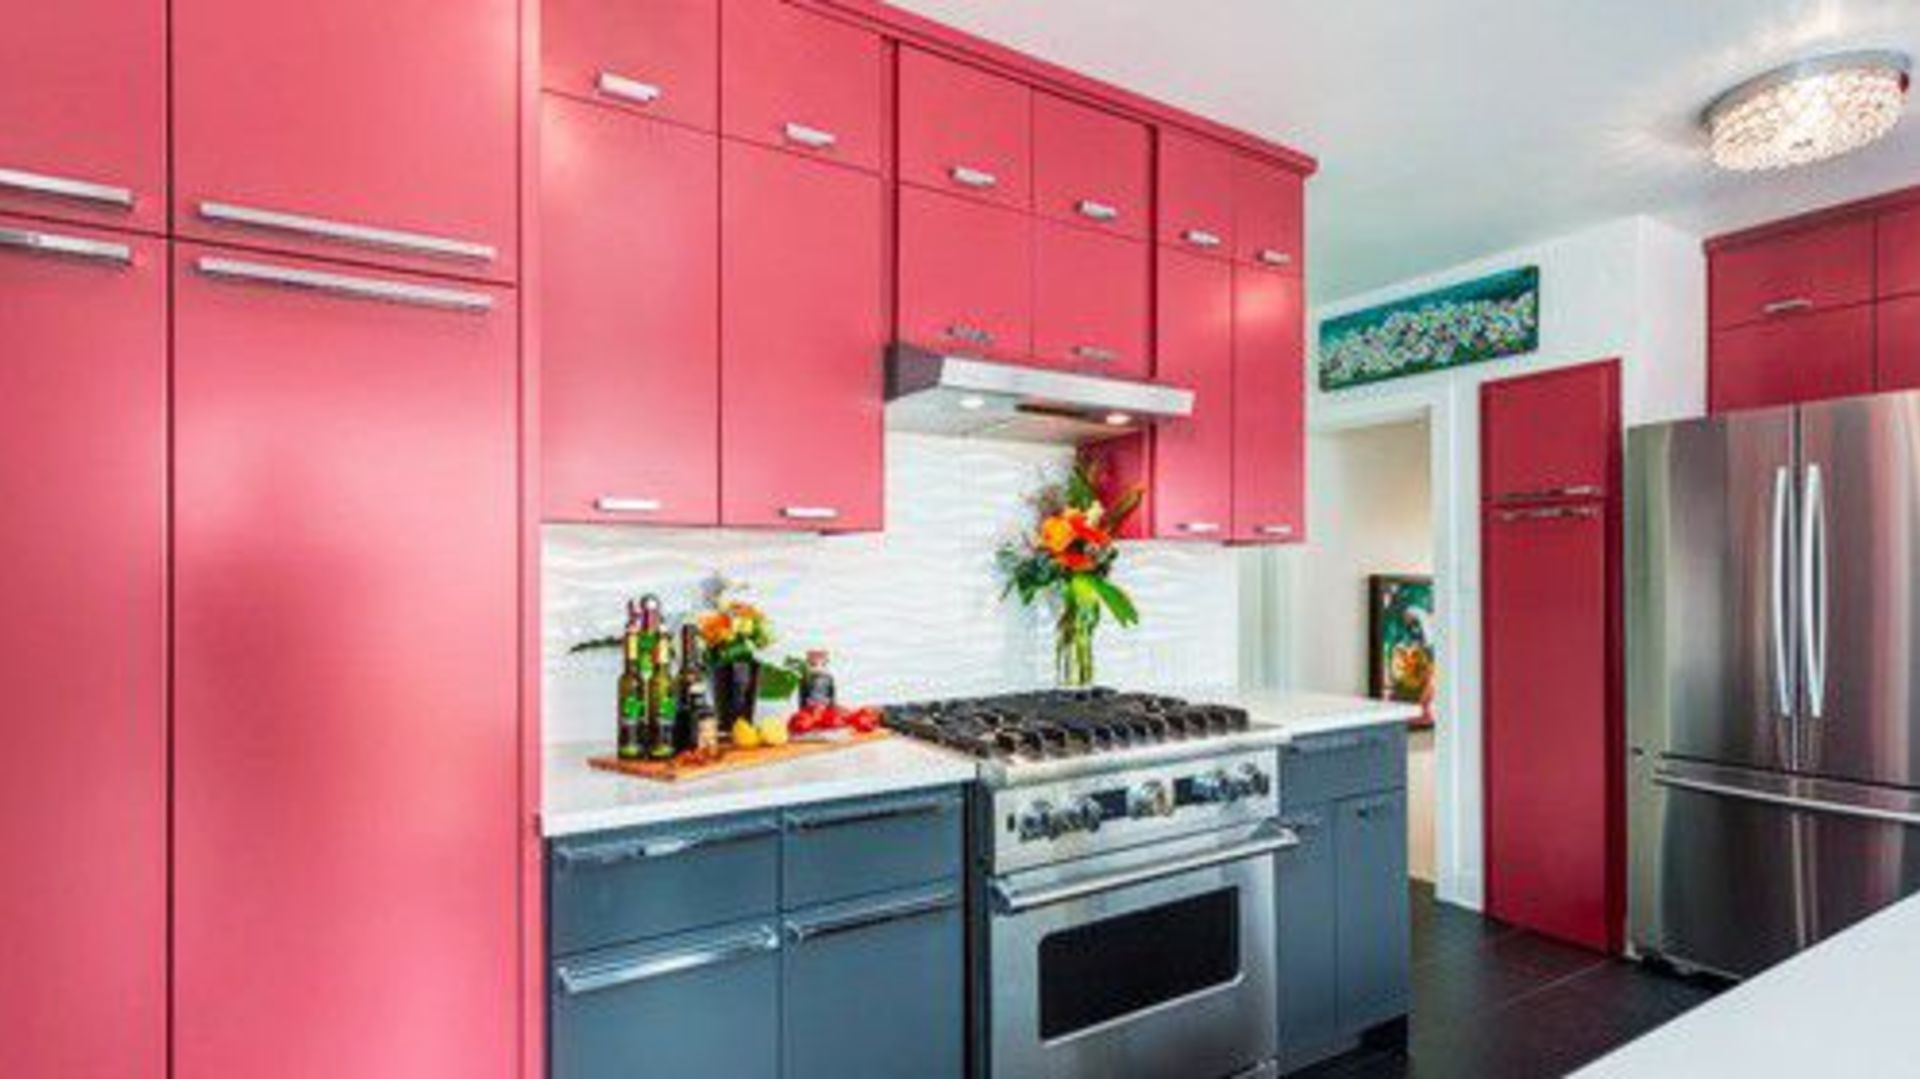 10 Daring Interior Design Trends You'll See Everywhere in 2019